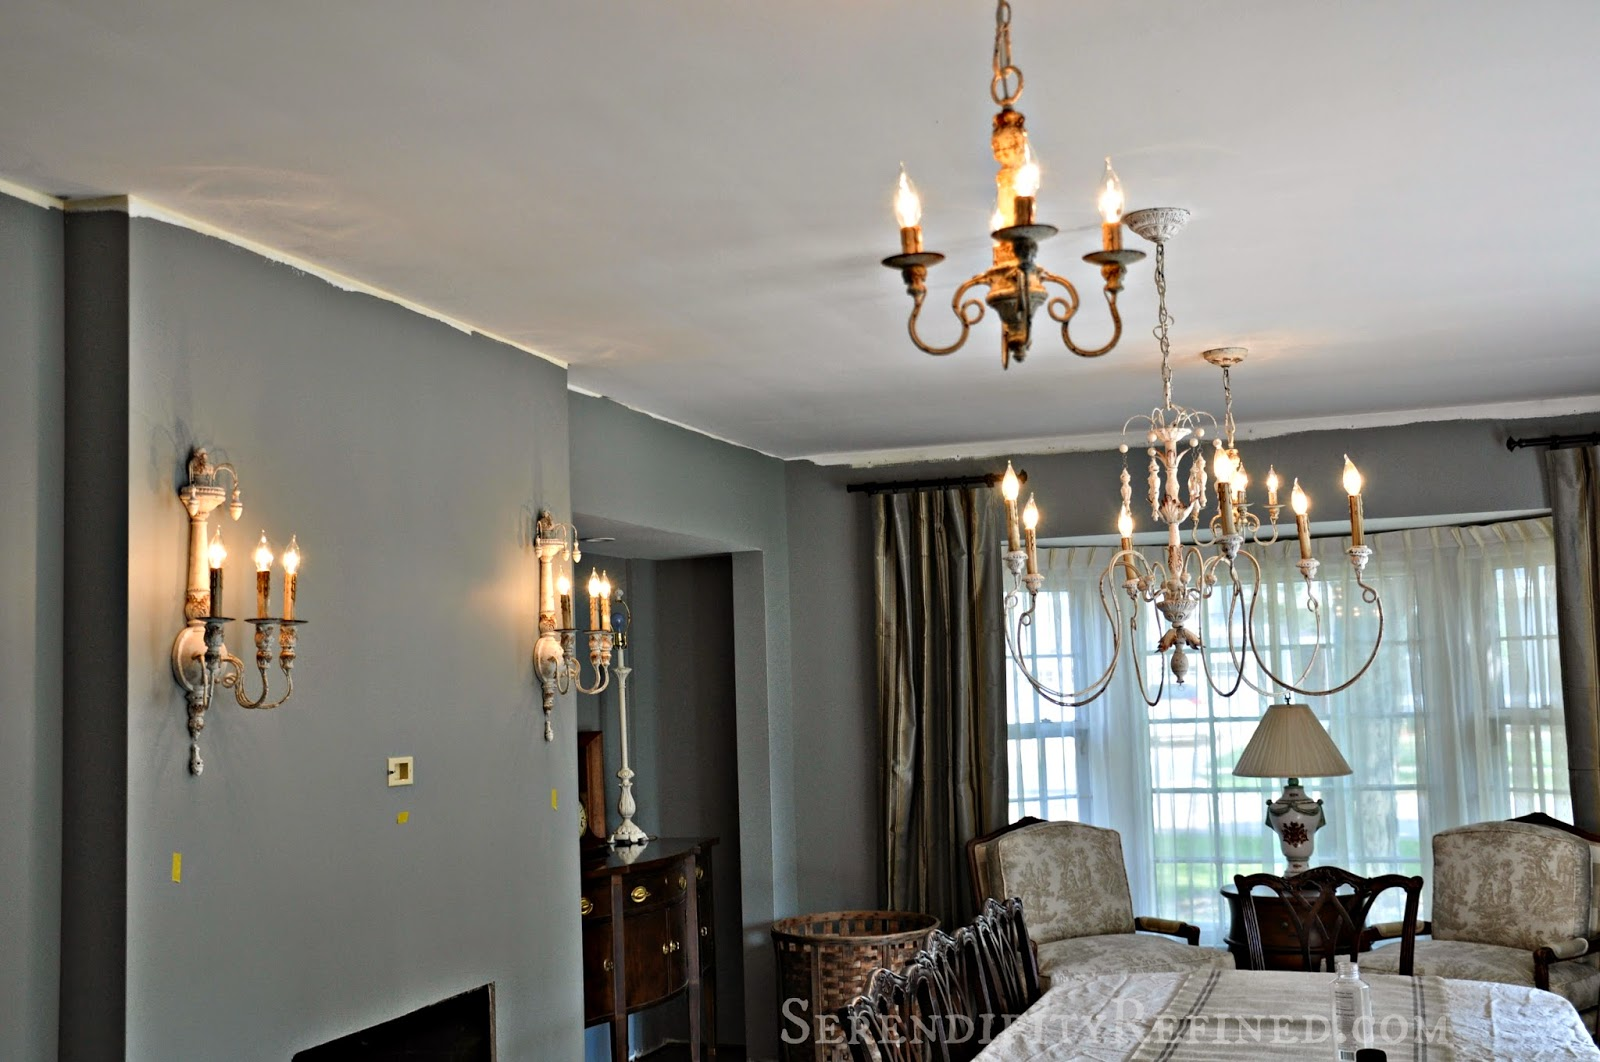 Serendipity Refined Blog: French Country Light Fixtures ...